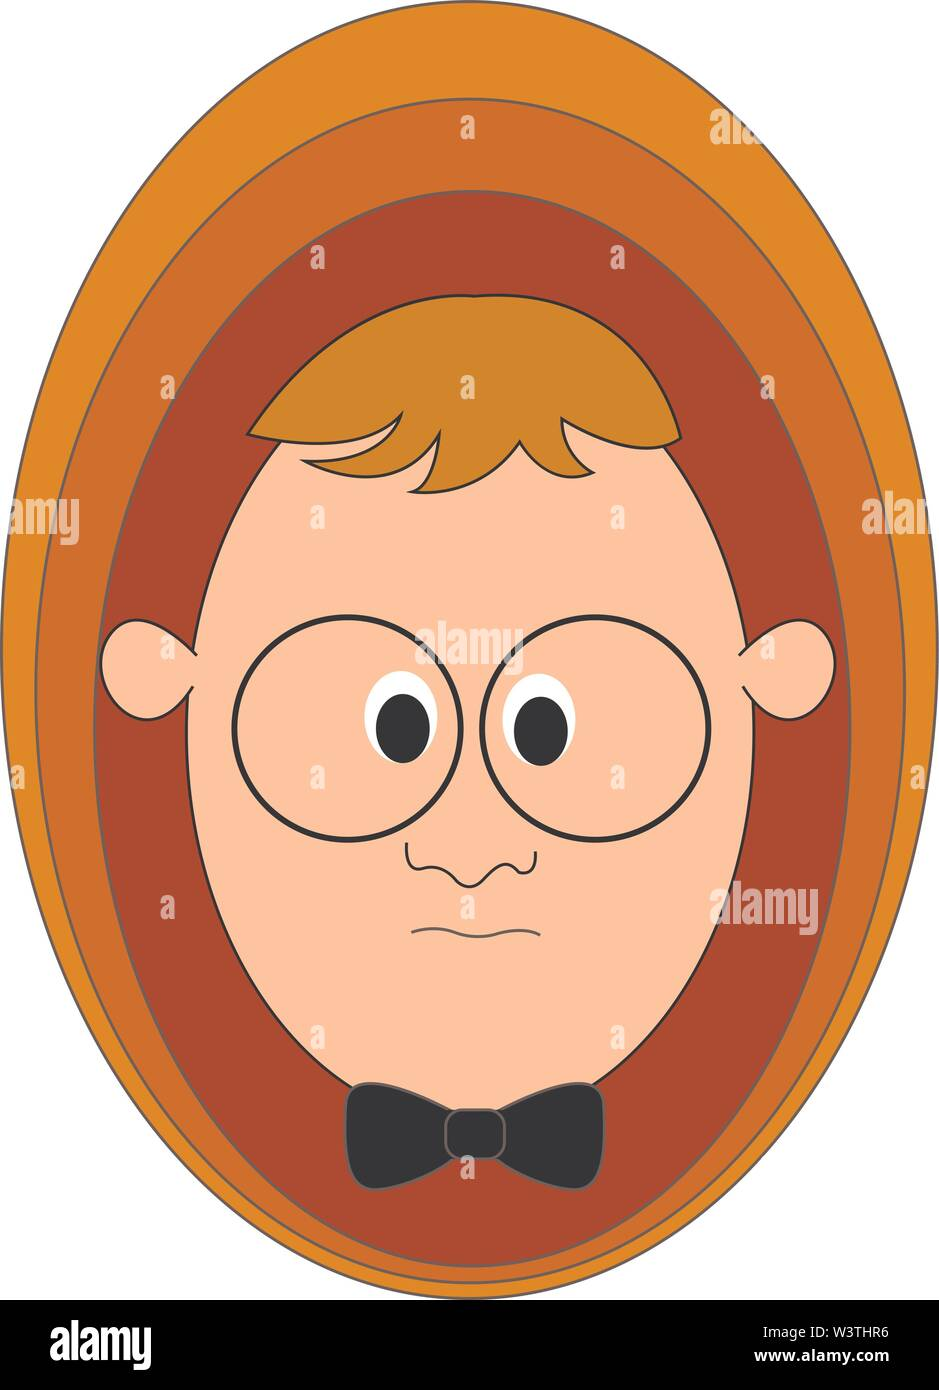 Boy with glasses, illustration, vector on white background. - Stock Image